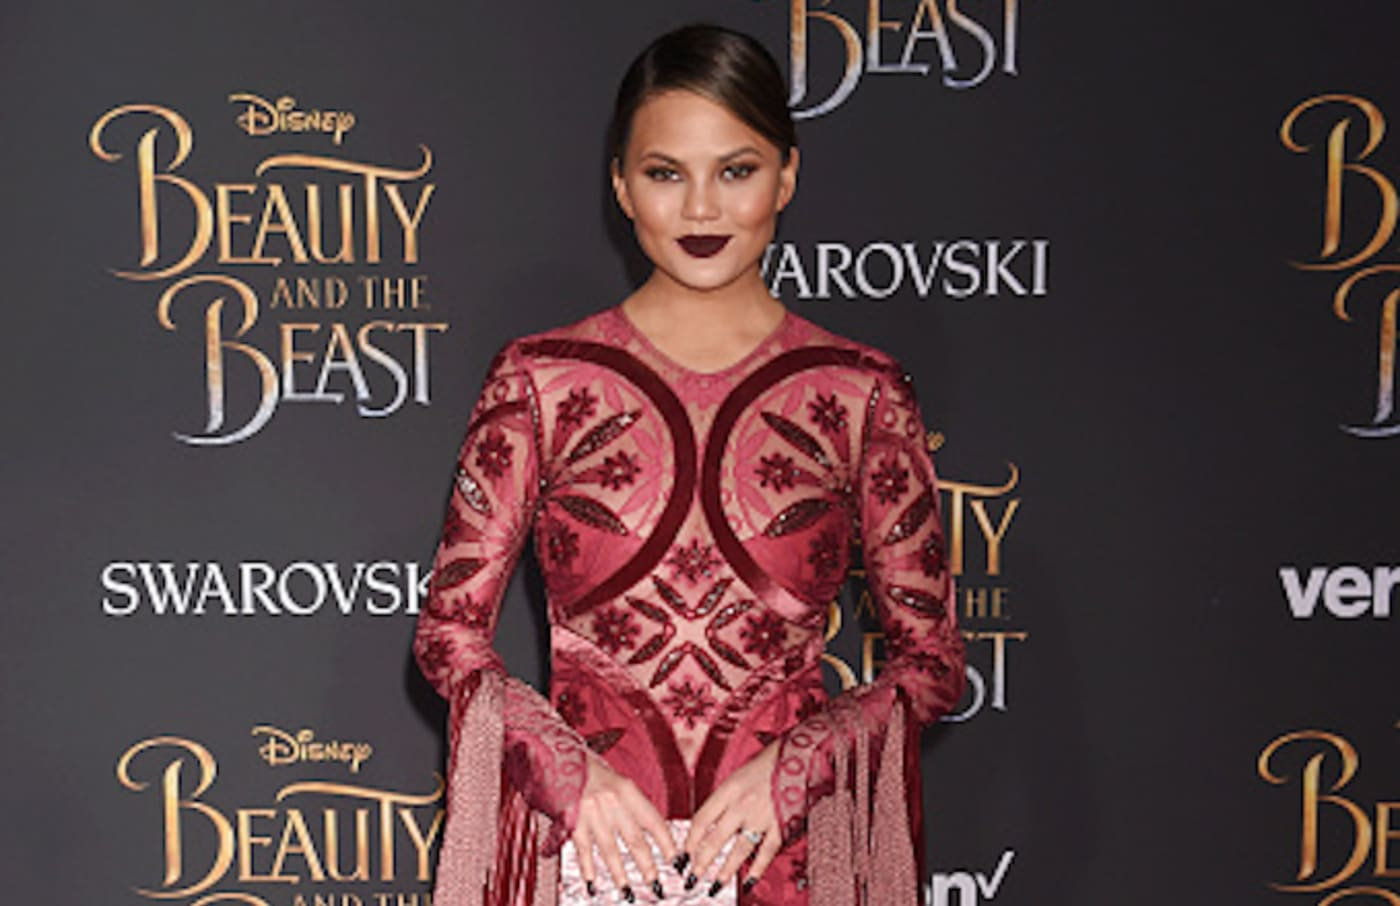 Chrissy Teigen arrives at the Premiere Of Disney's 'Beauty And The Beast'